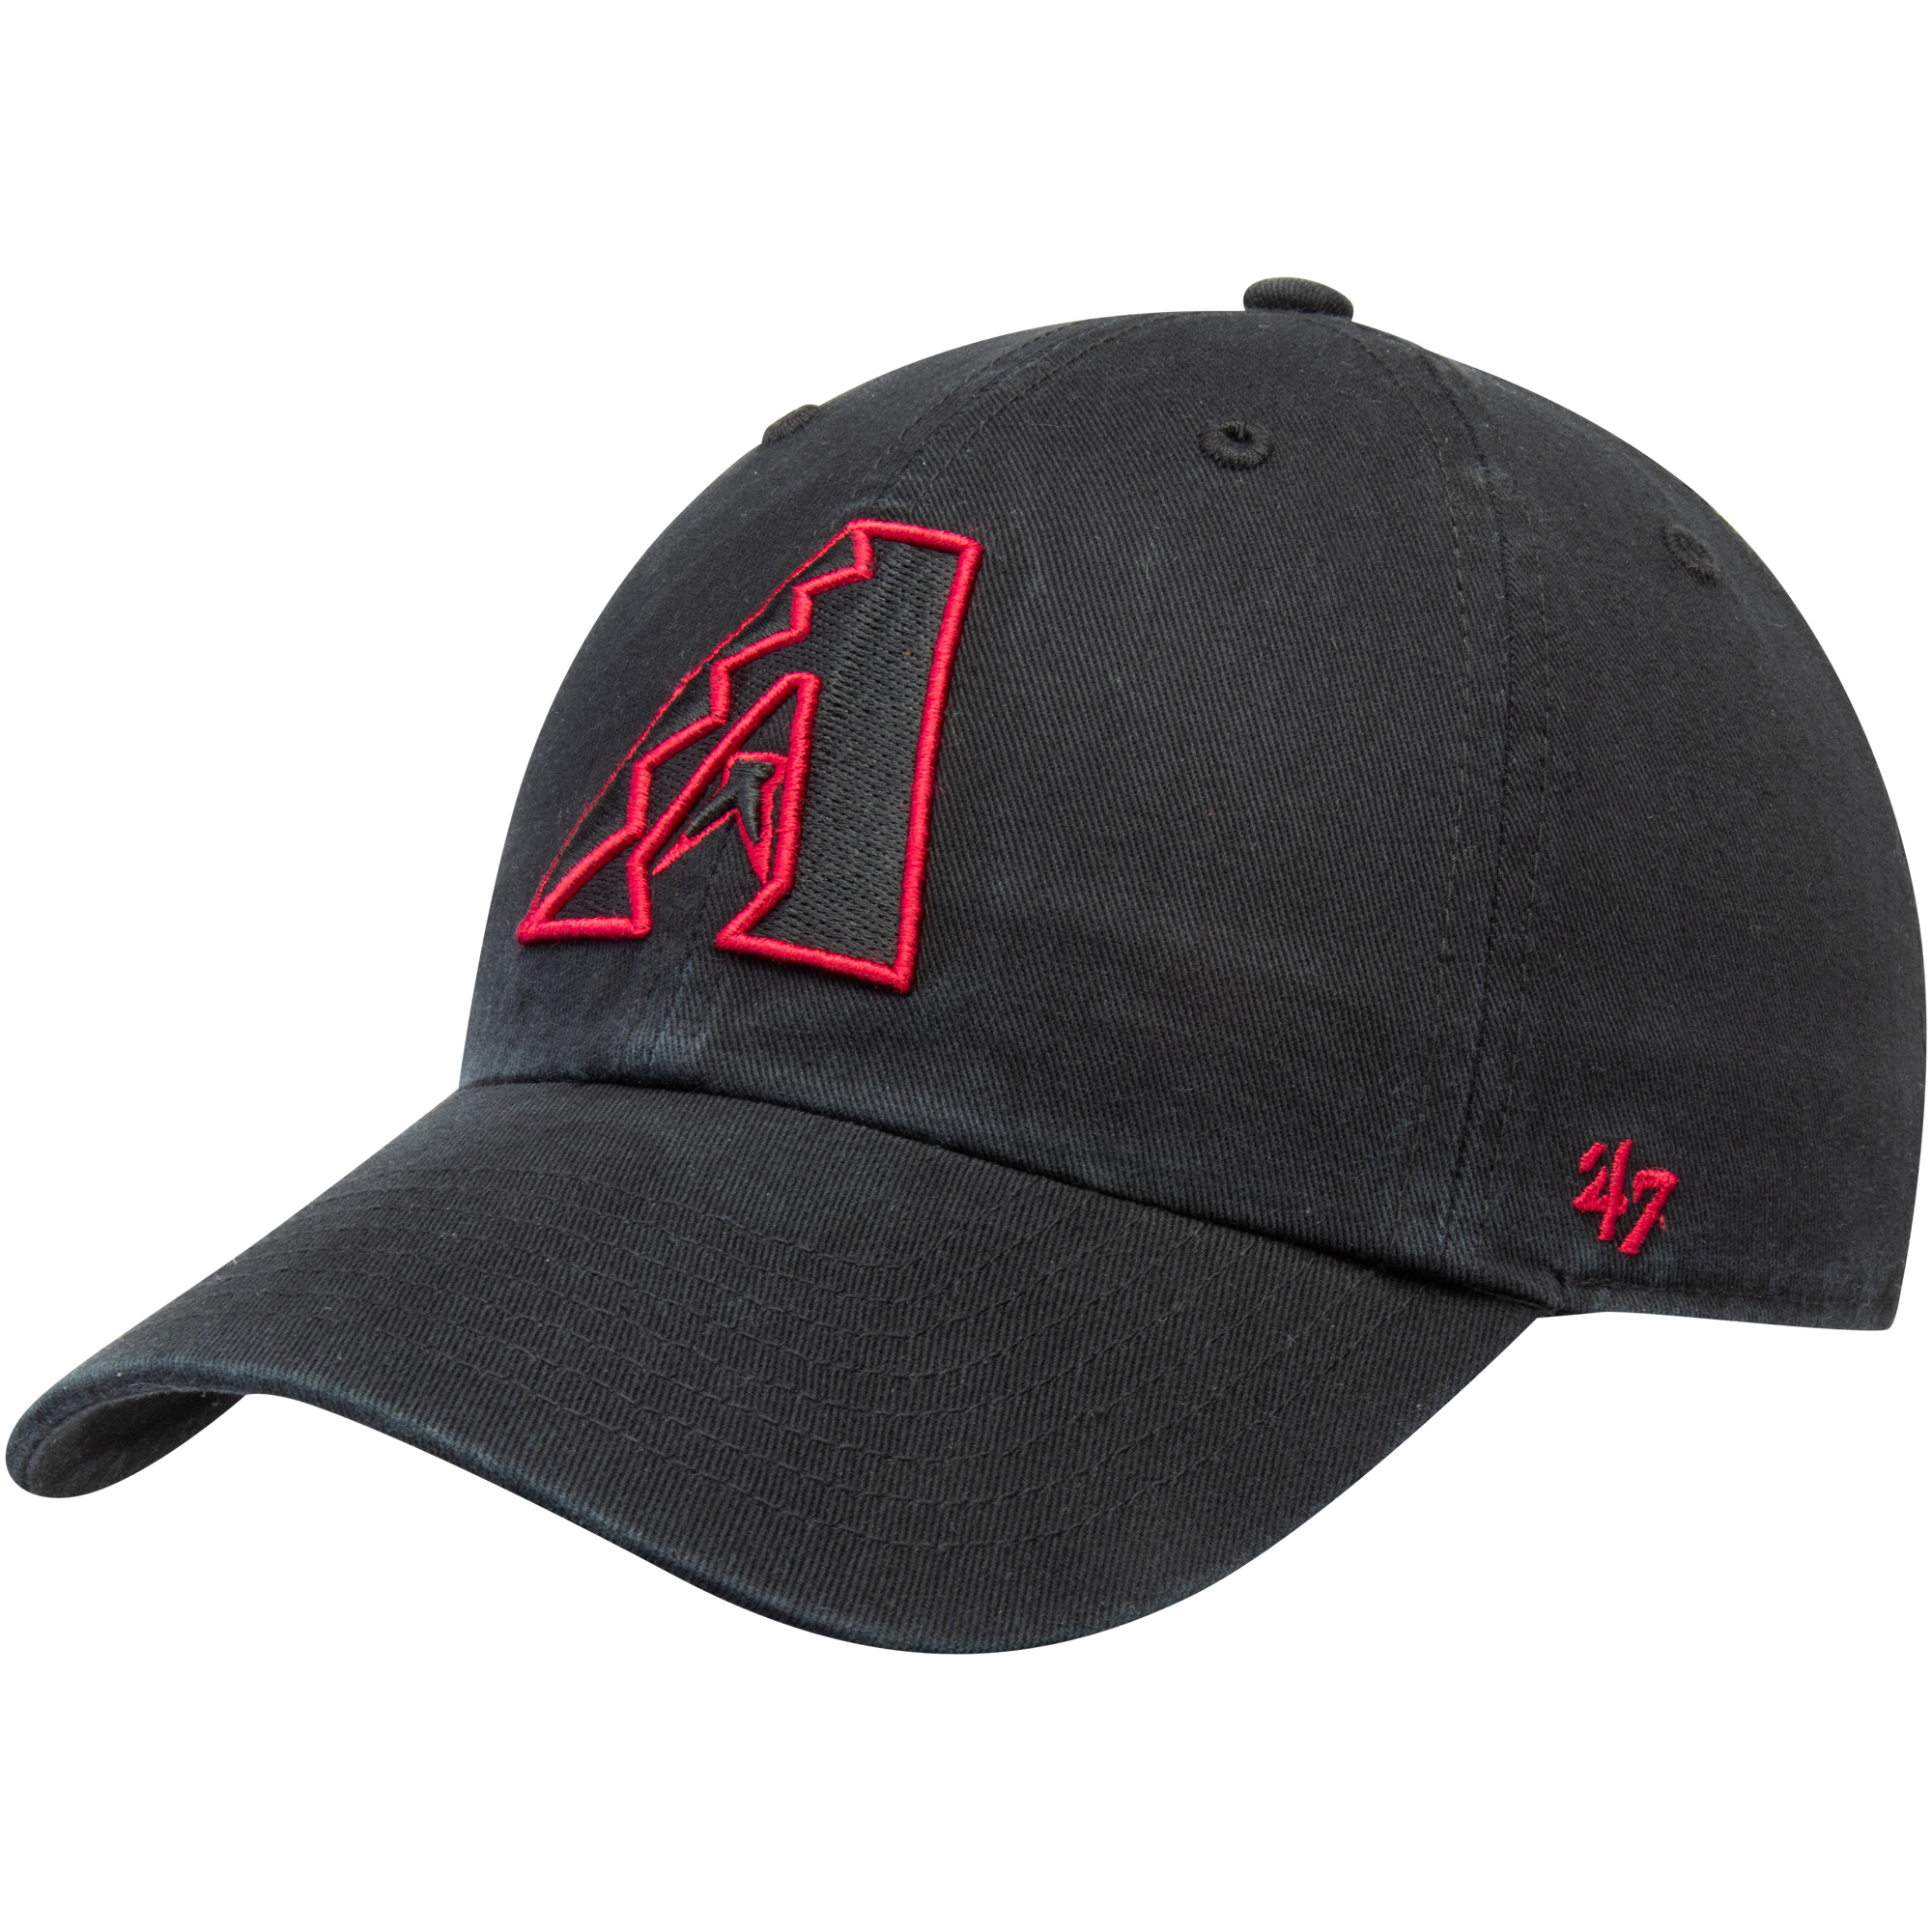 Arizona Diamondbacks '47 Team Color Clean Up Adjustable Hat - Black - OSFA